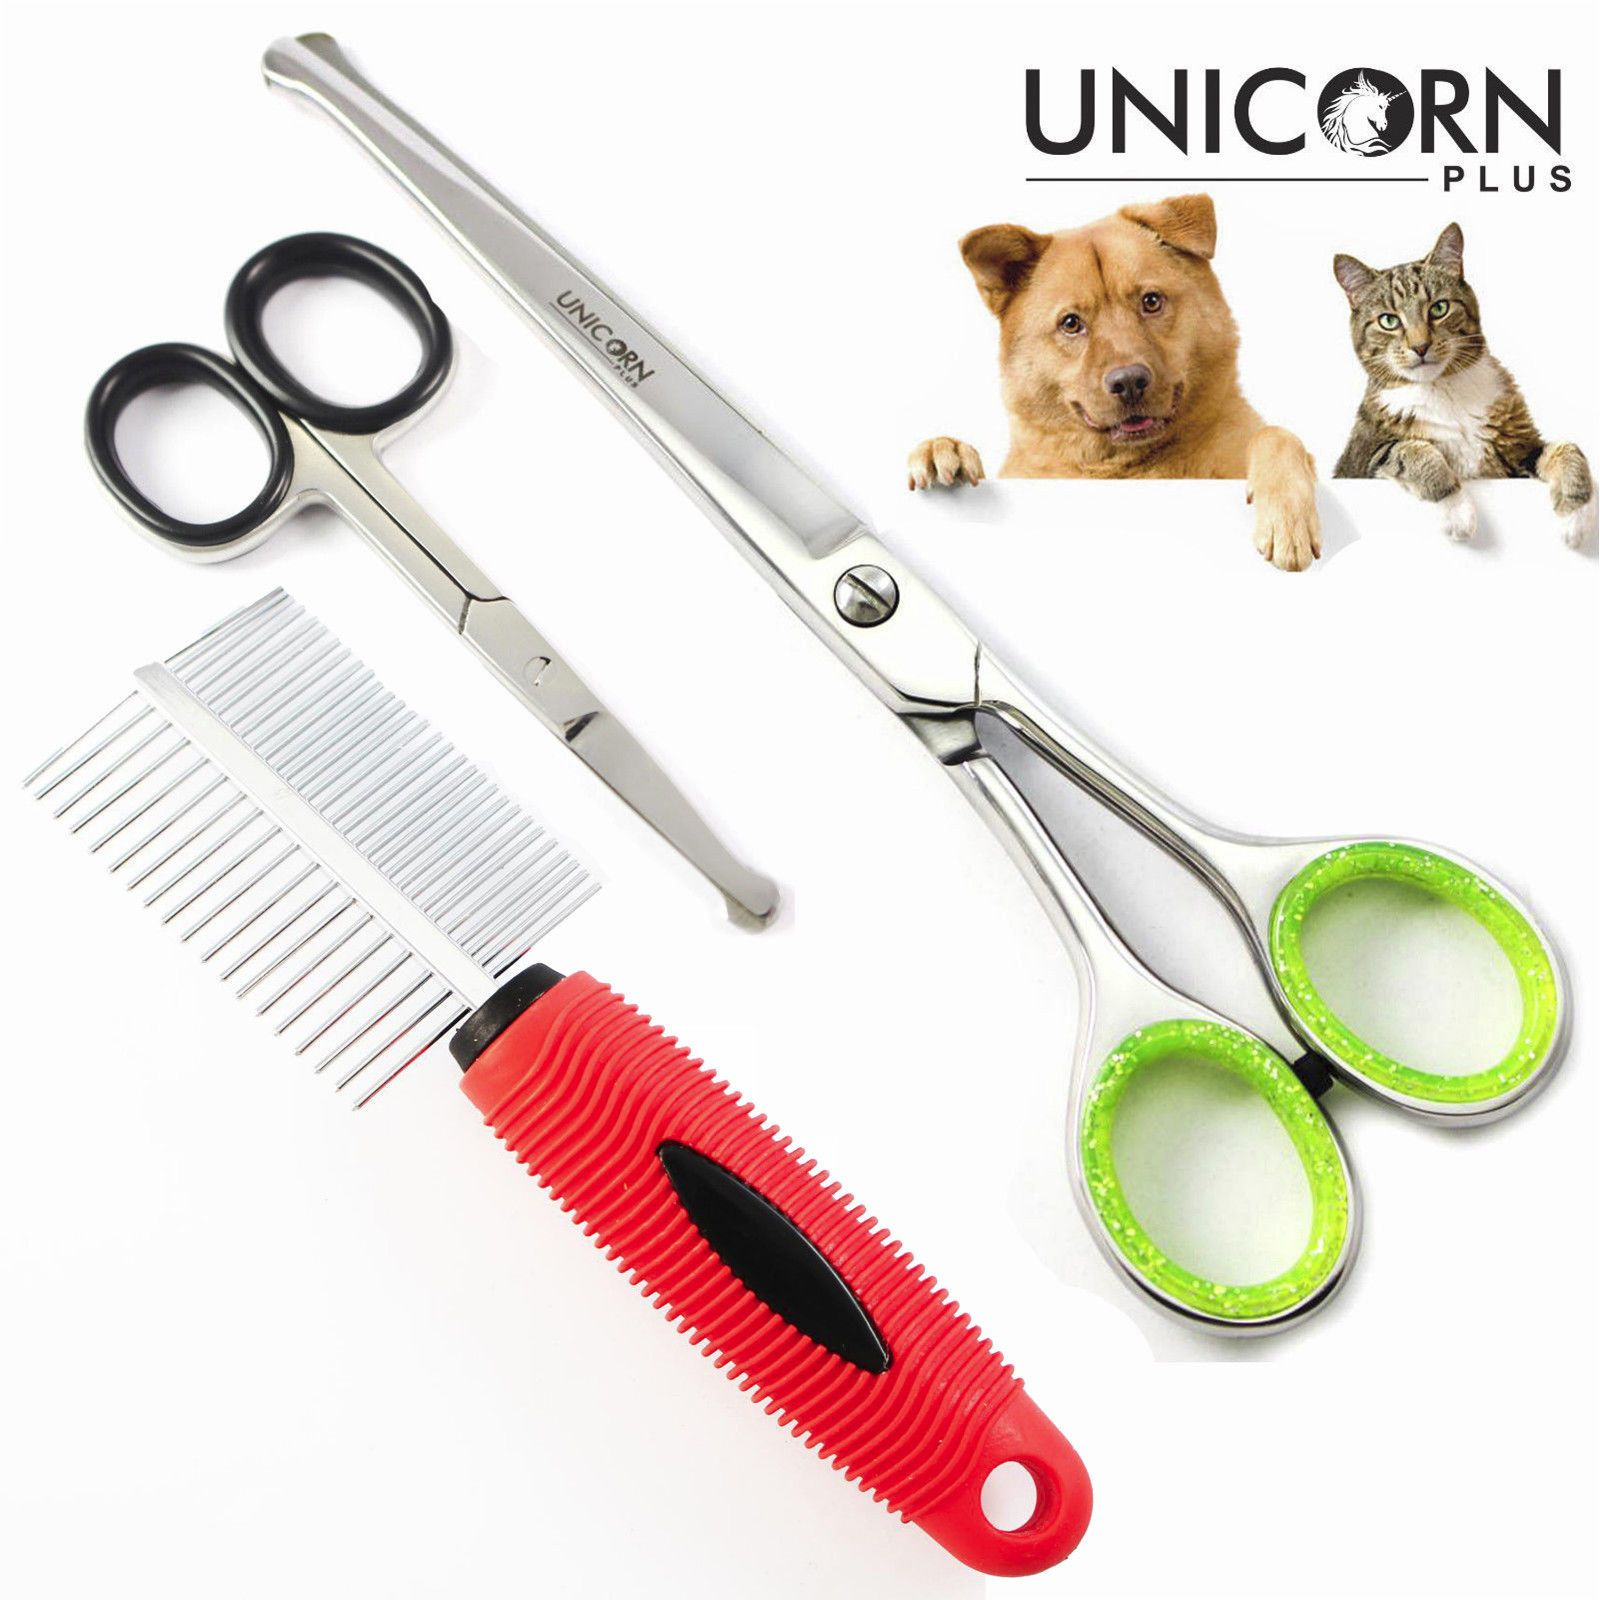 How Dogs Learn A Guide To Training Your Dog Dog Grooming Scissors Training Your Dog Diy Dog Stuff